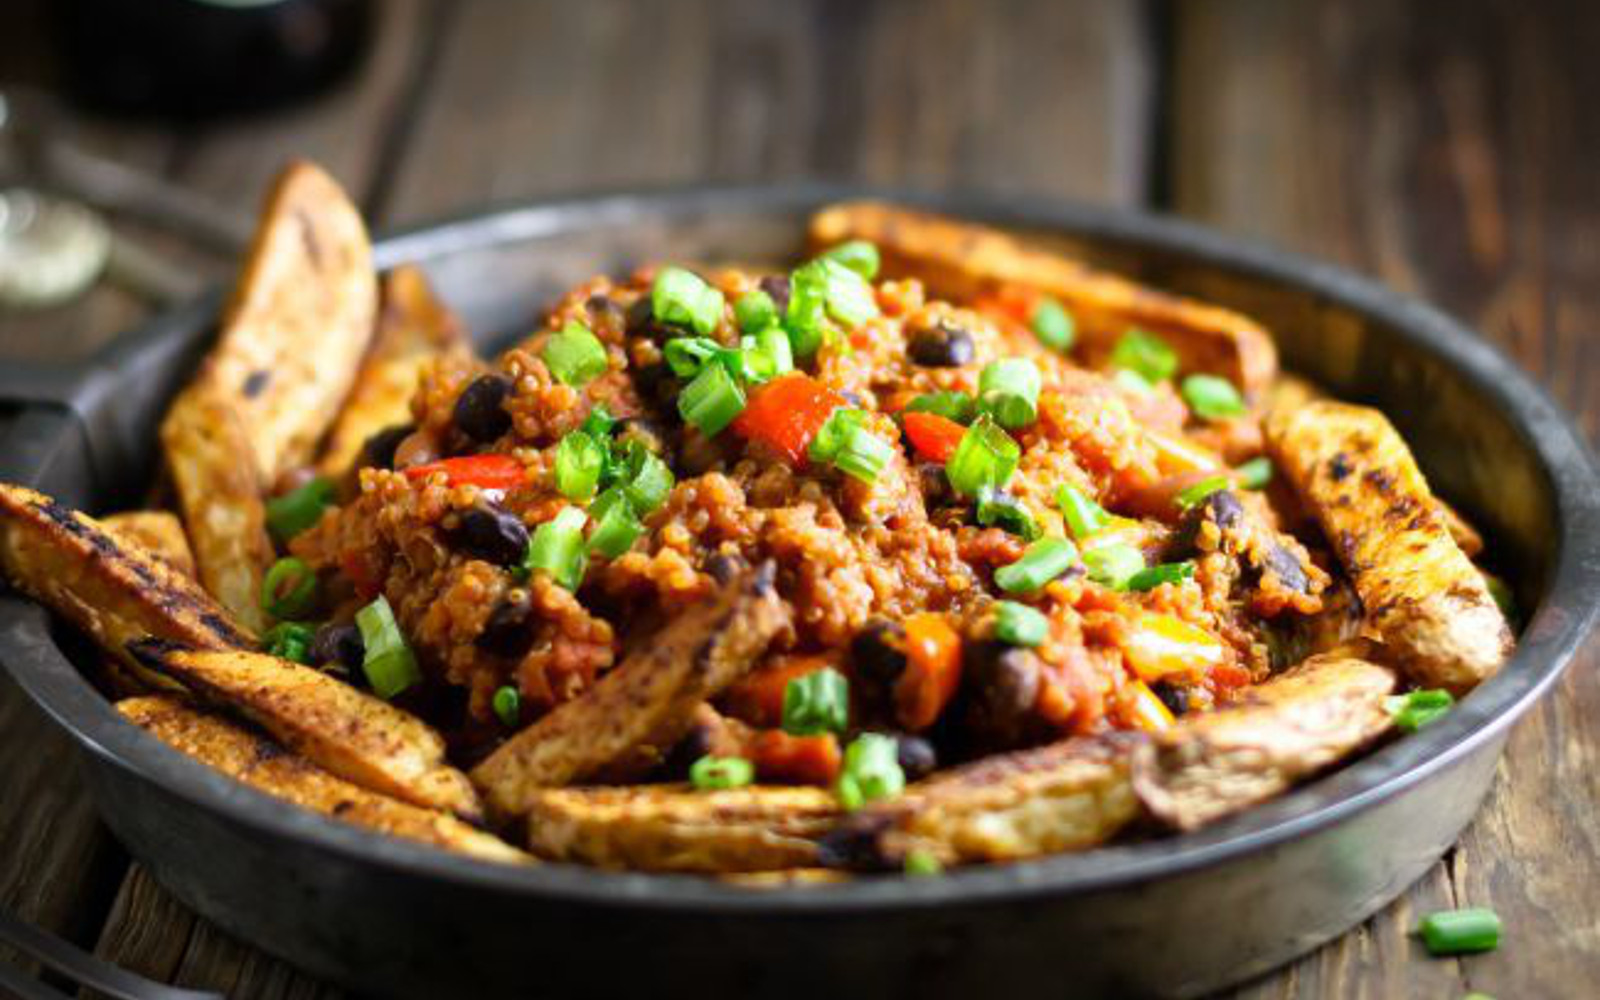 quiloa chili fries